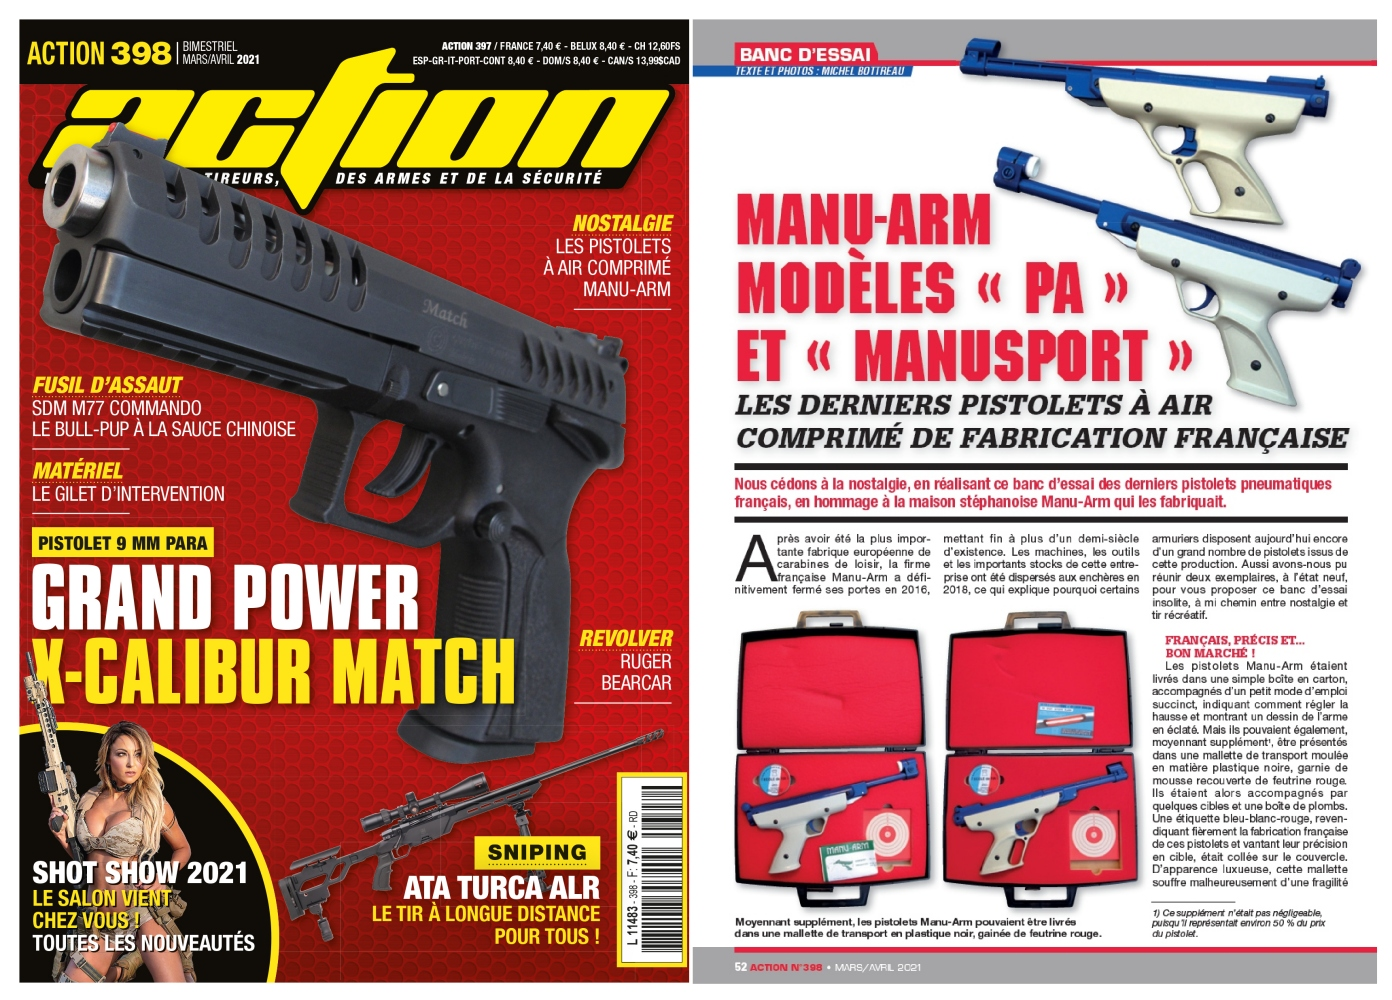 Le banc d'essai du pistolet Grand Power X-Calibur Match a été publié sur 6 pages dans le magazine Action n°398 (mars/avril 2021)